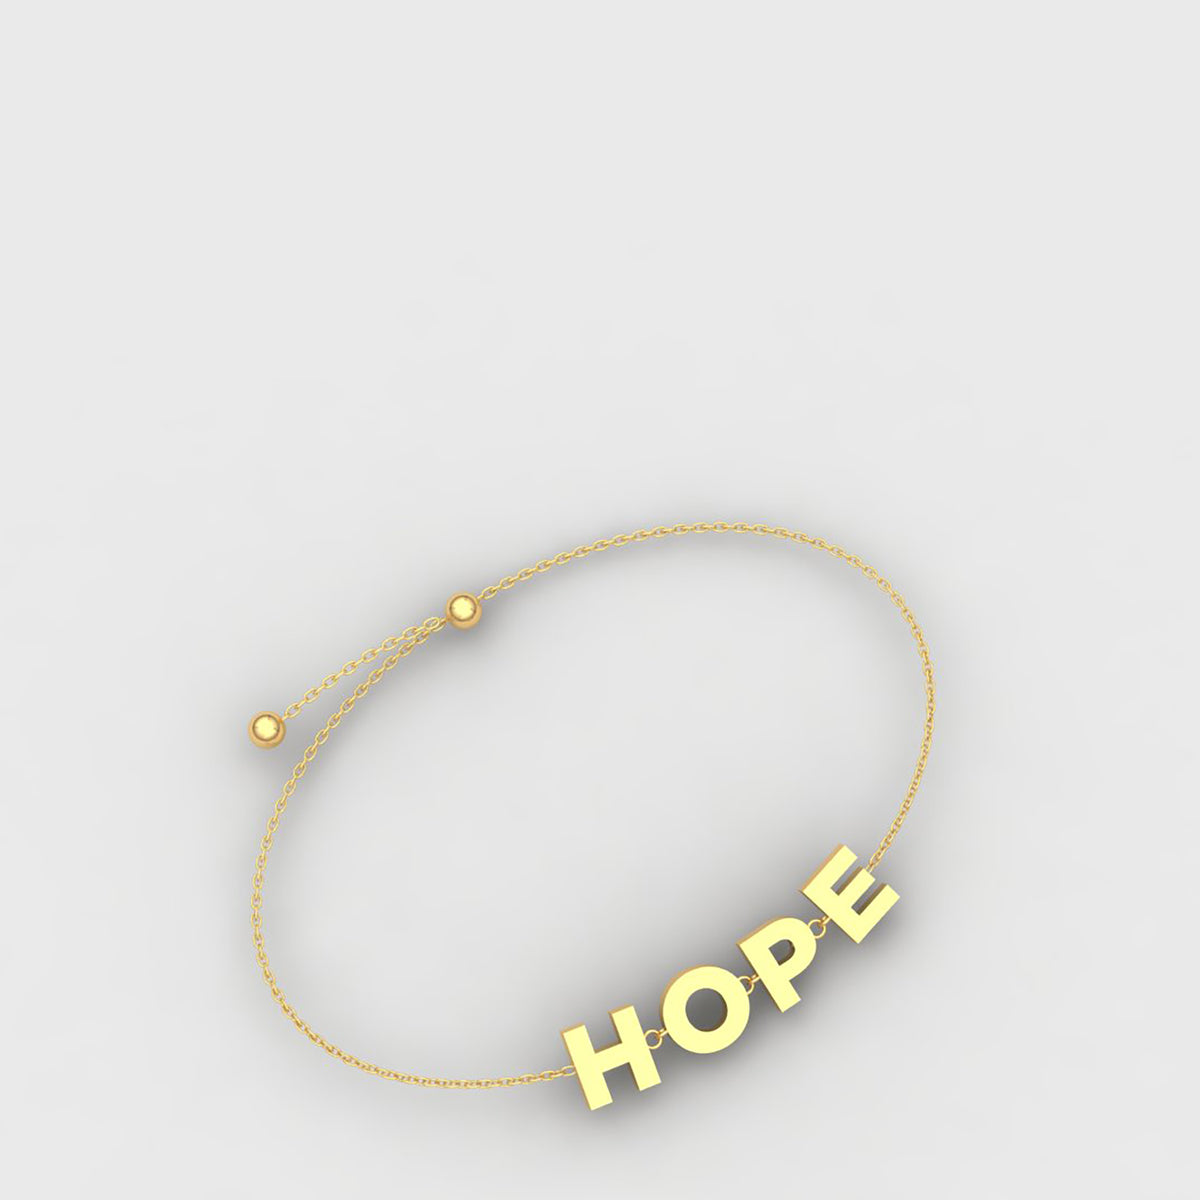 18k Yellow Gold Hope Bracelet